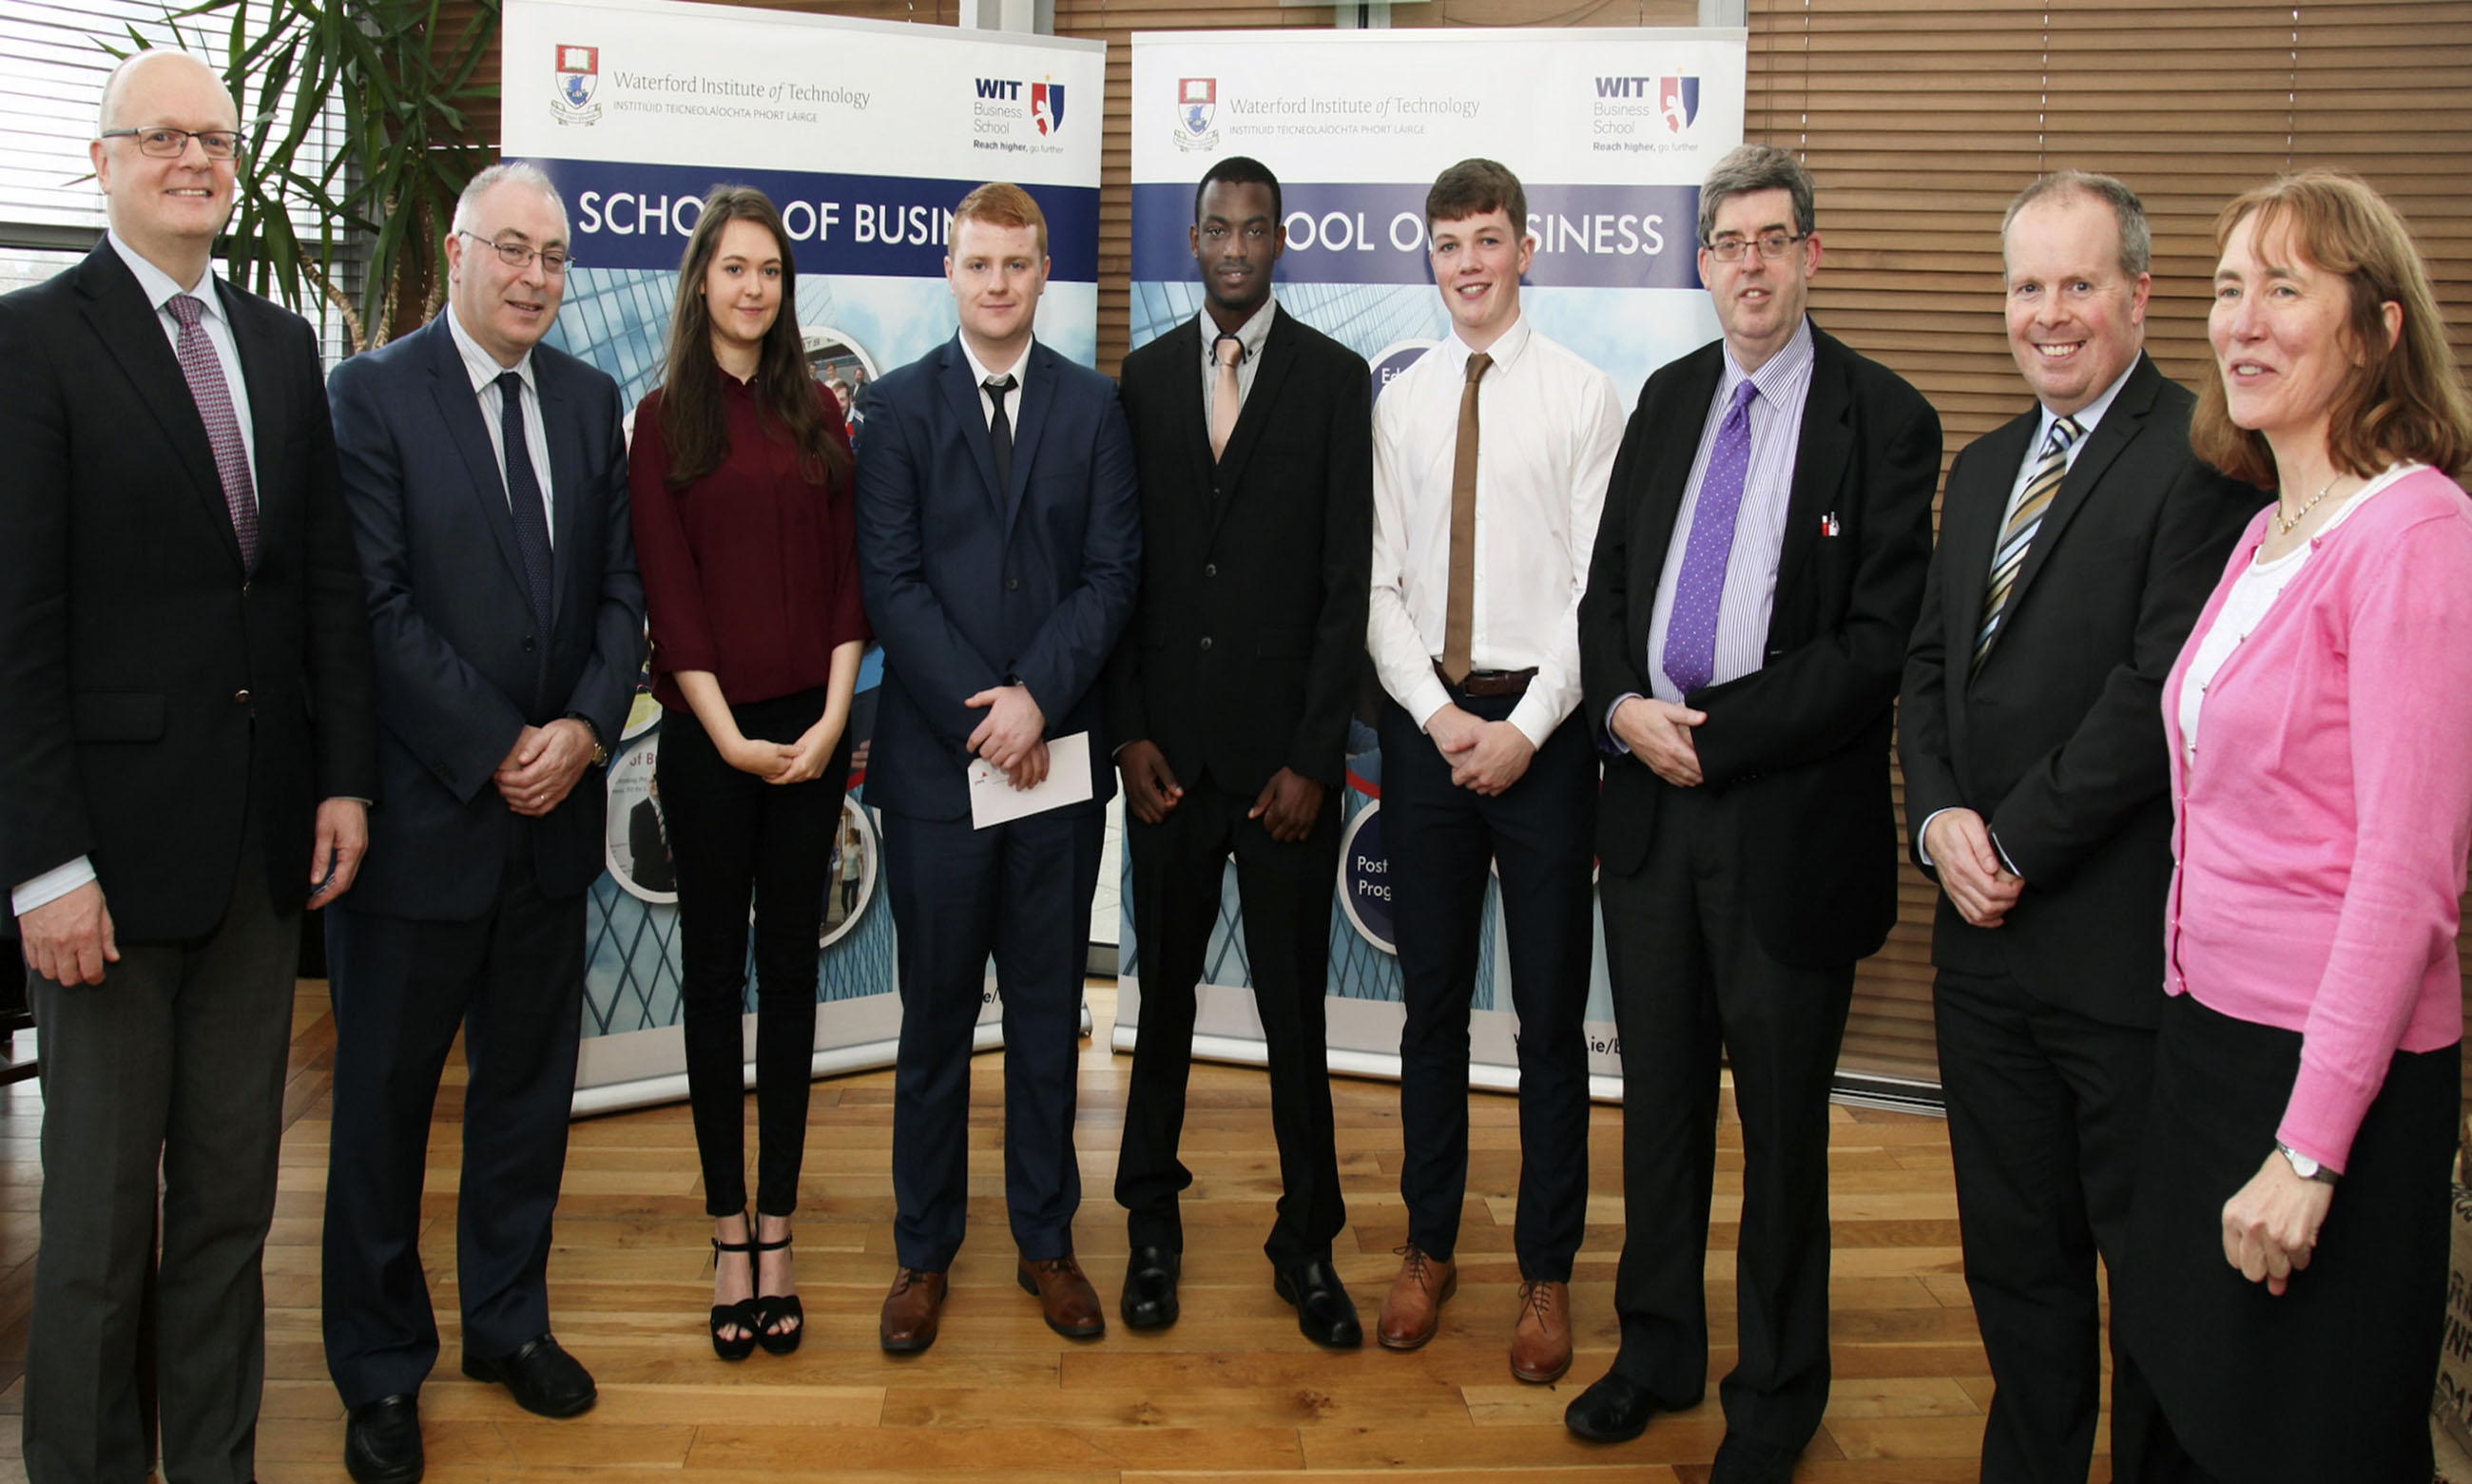 Presentation by Martin Freyne (PWC) to the Award recipients. From left: Dr Thomas O'Toole (Head of School (Dean) of Business, Dr Thomas O'Toole), Martin Freyne (PWC), Louise Honey (Merit Award), Noel Whelan (Scholarship Recipient), Mury Idris (Merit Award), Nick Byrne (Merit Award), Ger Long (Head of School), Paul Treacy (Programme Leader), Rosemarie Kelly (Lecturer in WIT)